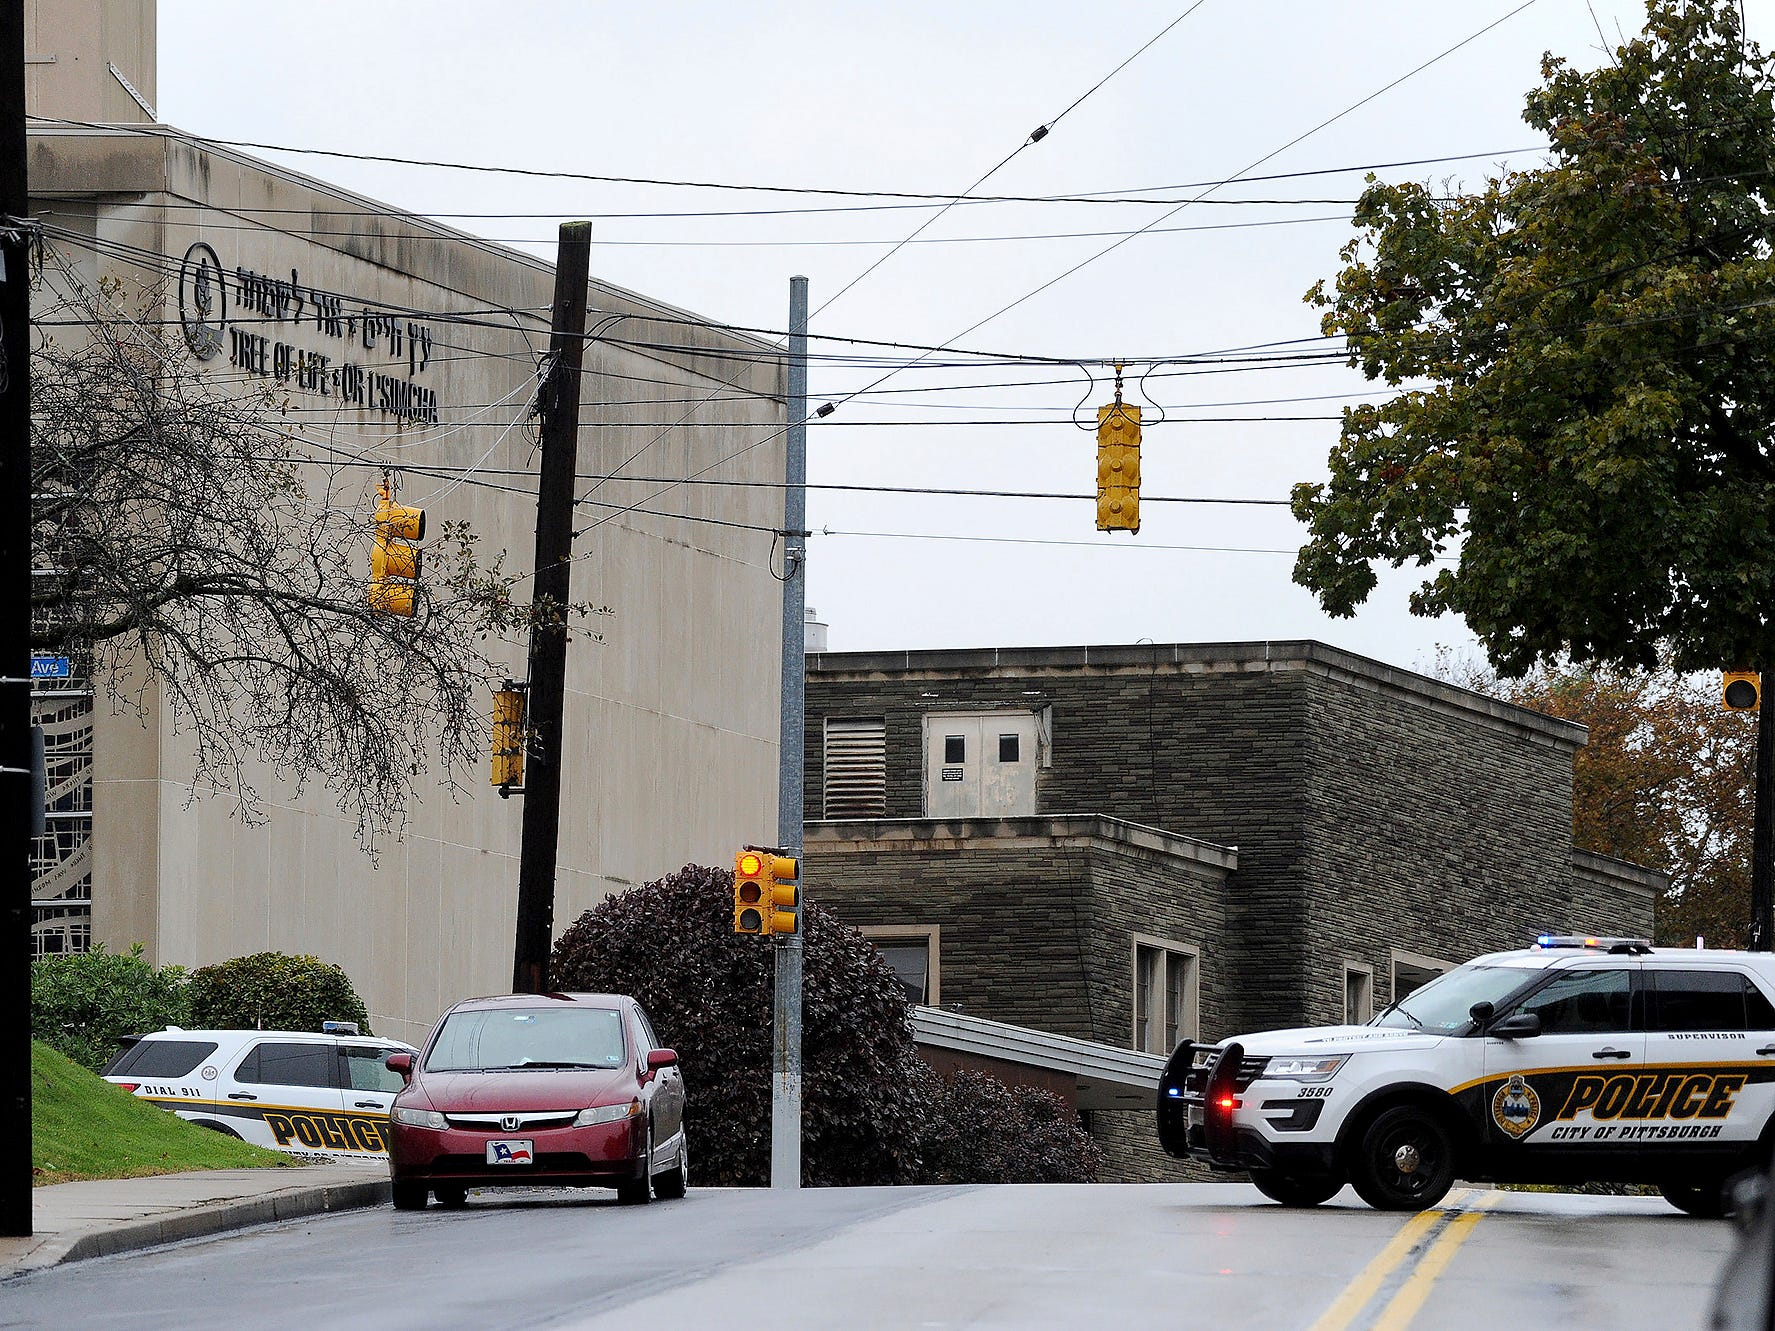 Police respond to an active shooter situation at the Tree of Life synagogue on Wildins Avenue in the Squirrel Hill neighborhood of Pittsburgh, Pa. on  Oct. 27, 2018.